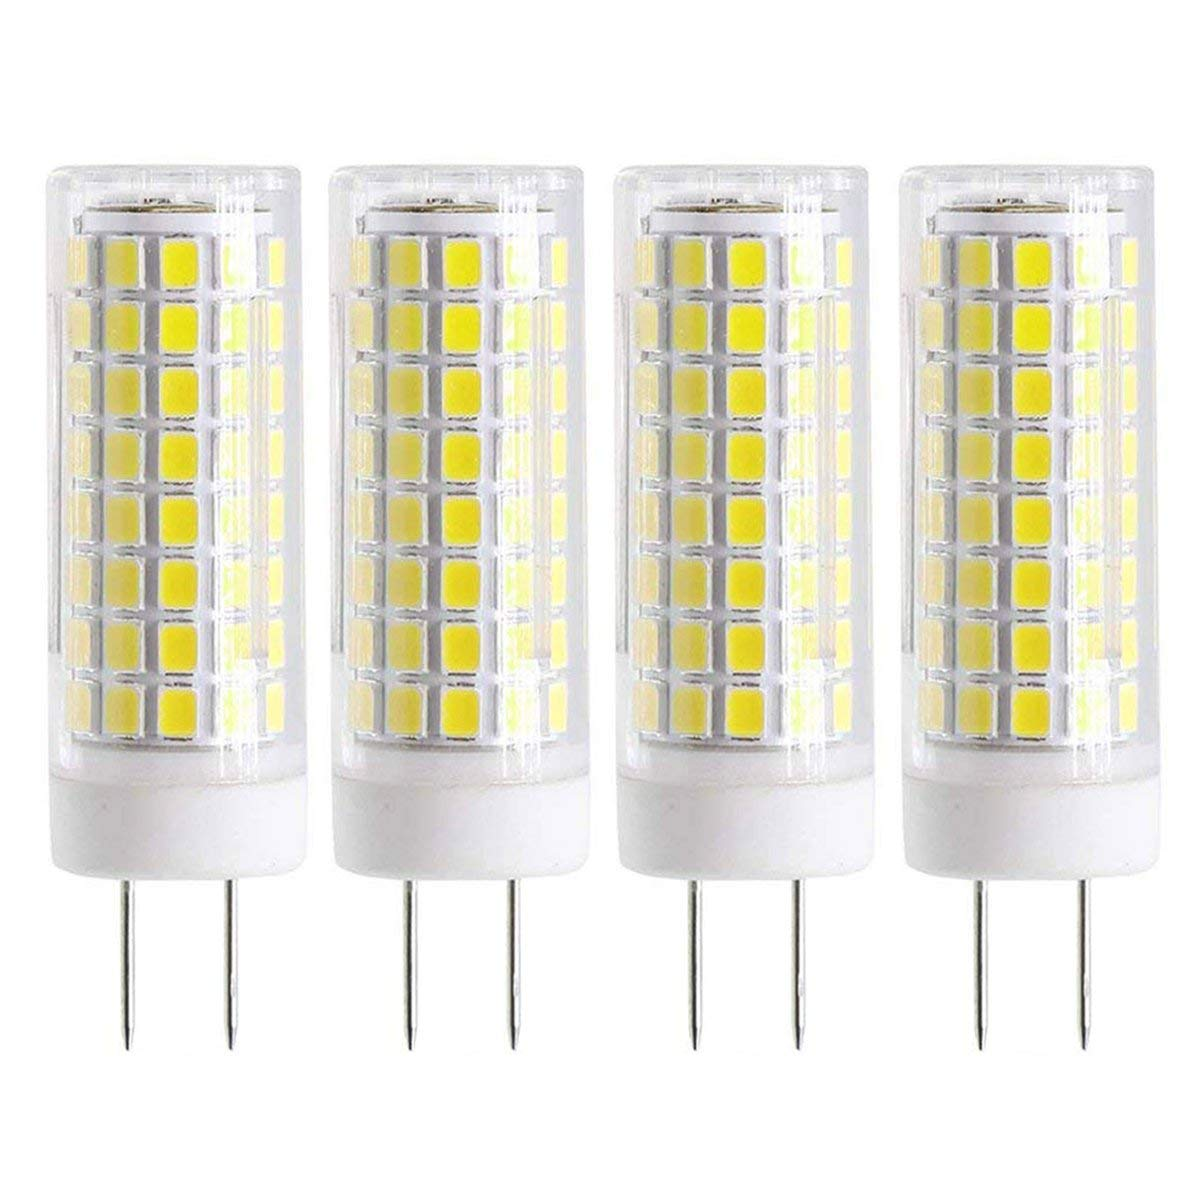 New G8 LED Bulb, Dimmable 7W G8 Bulb, GY8.6 75W Halogen Bulb Replacement, 120V G8 75Watt 750 LM White 6000K (4-Pack)